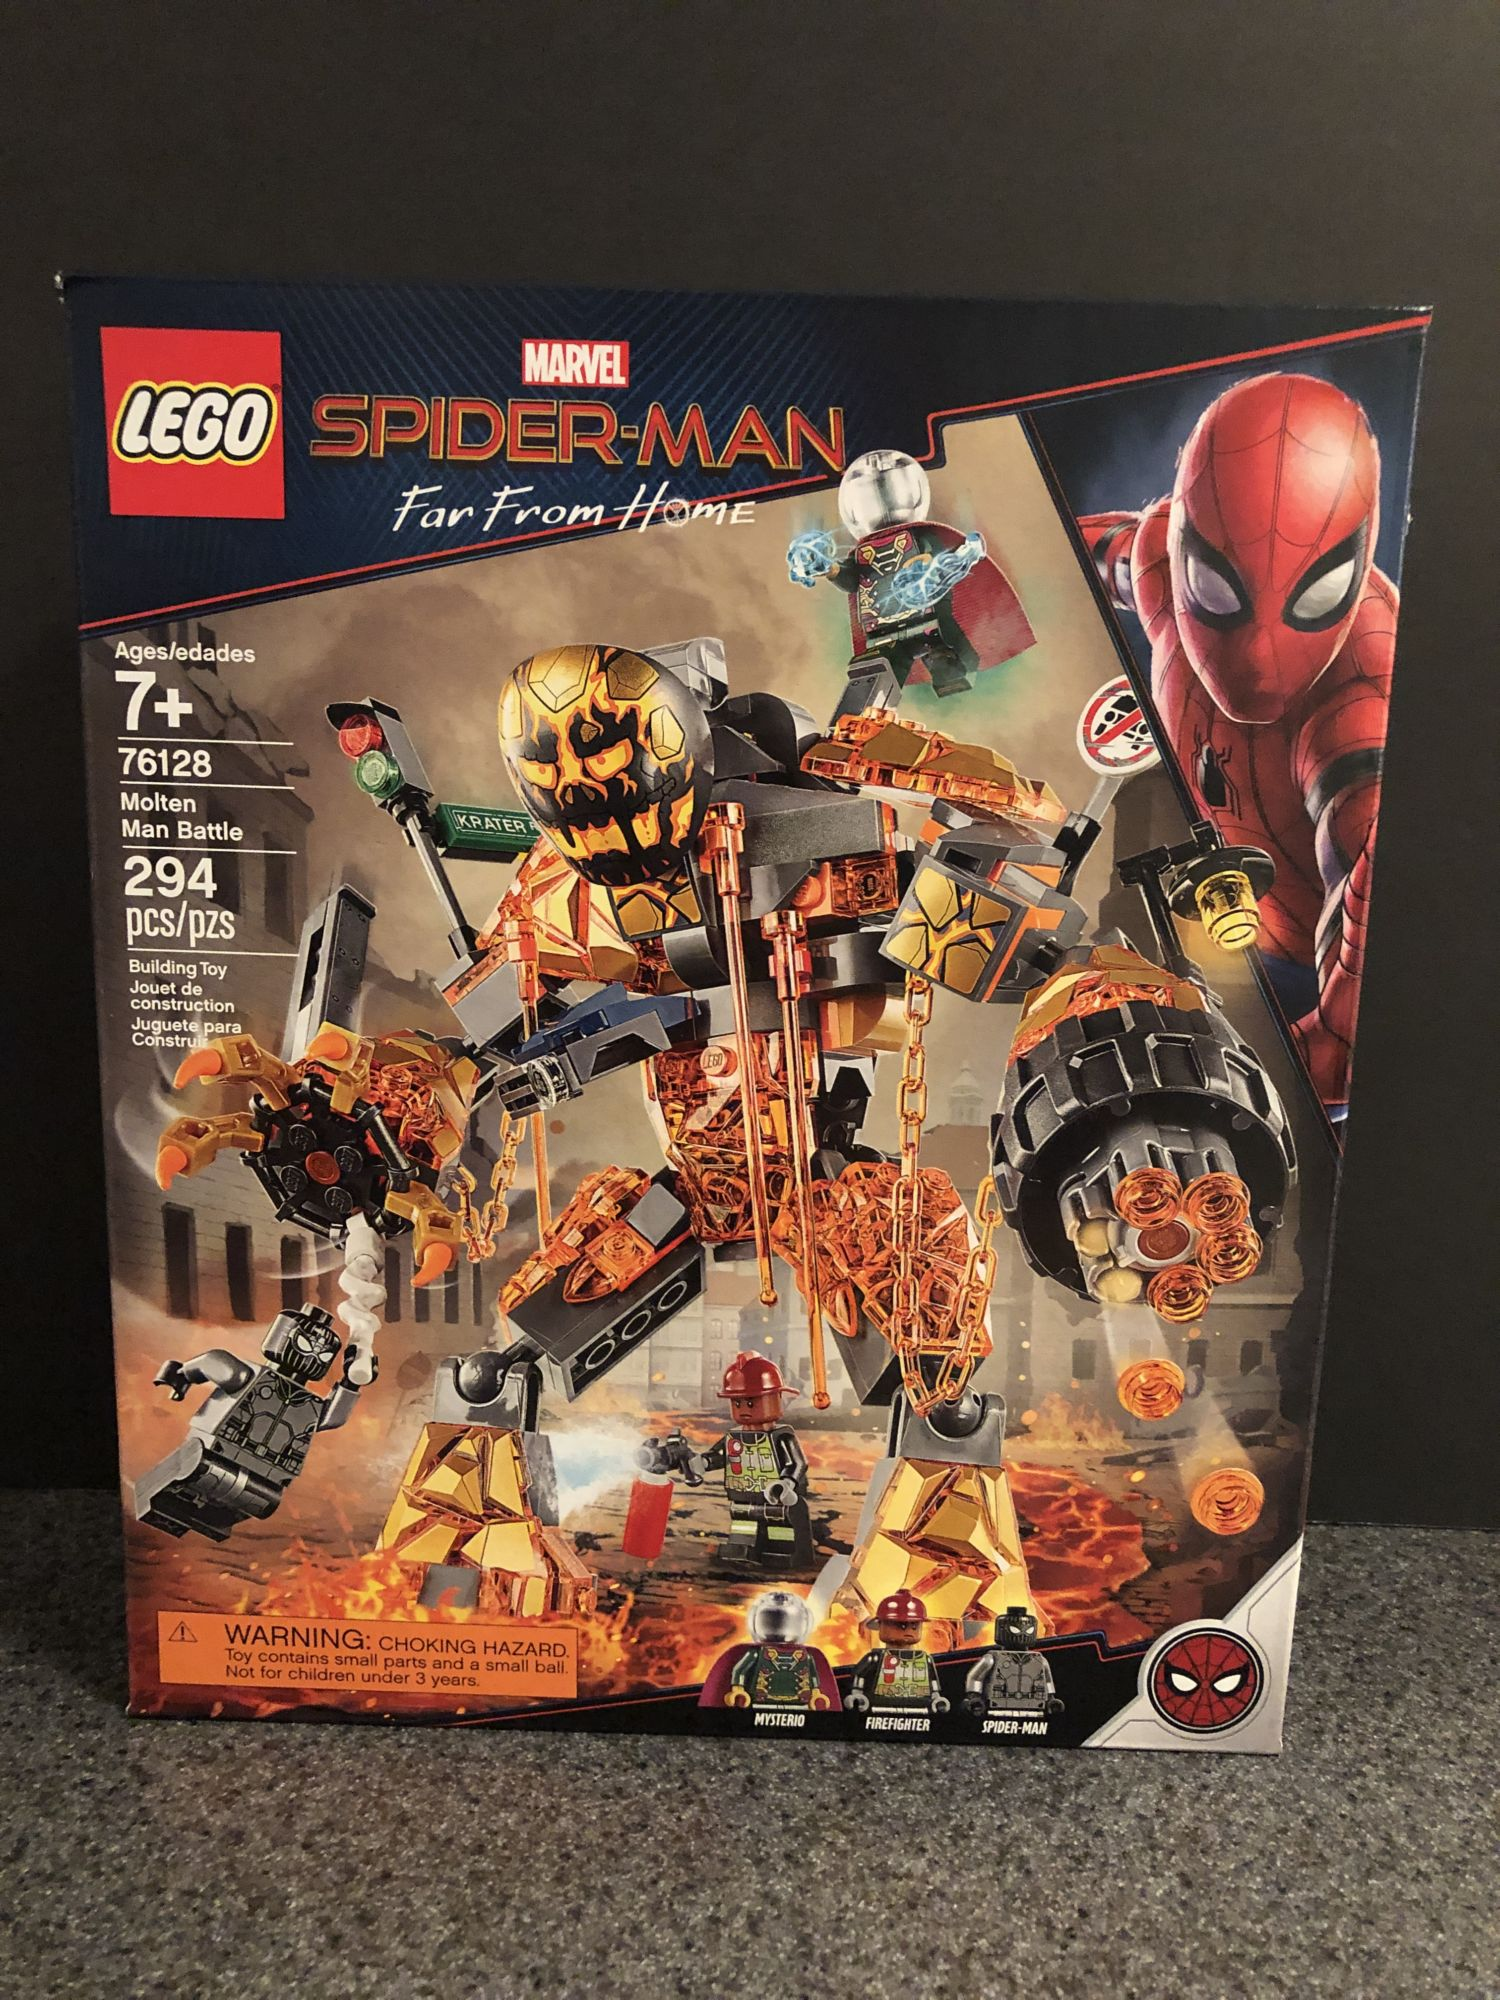 Molten Set At ManFar A Man Spider Look Take Let's Lego Home's From PkZiTuOX